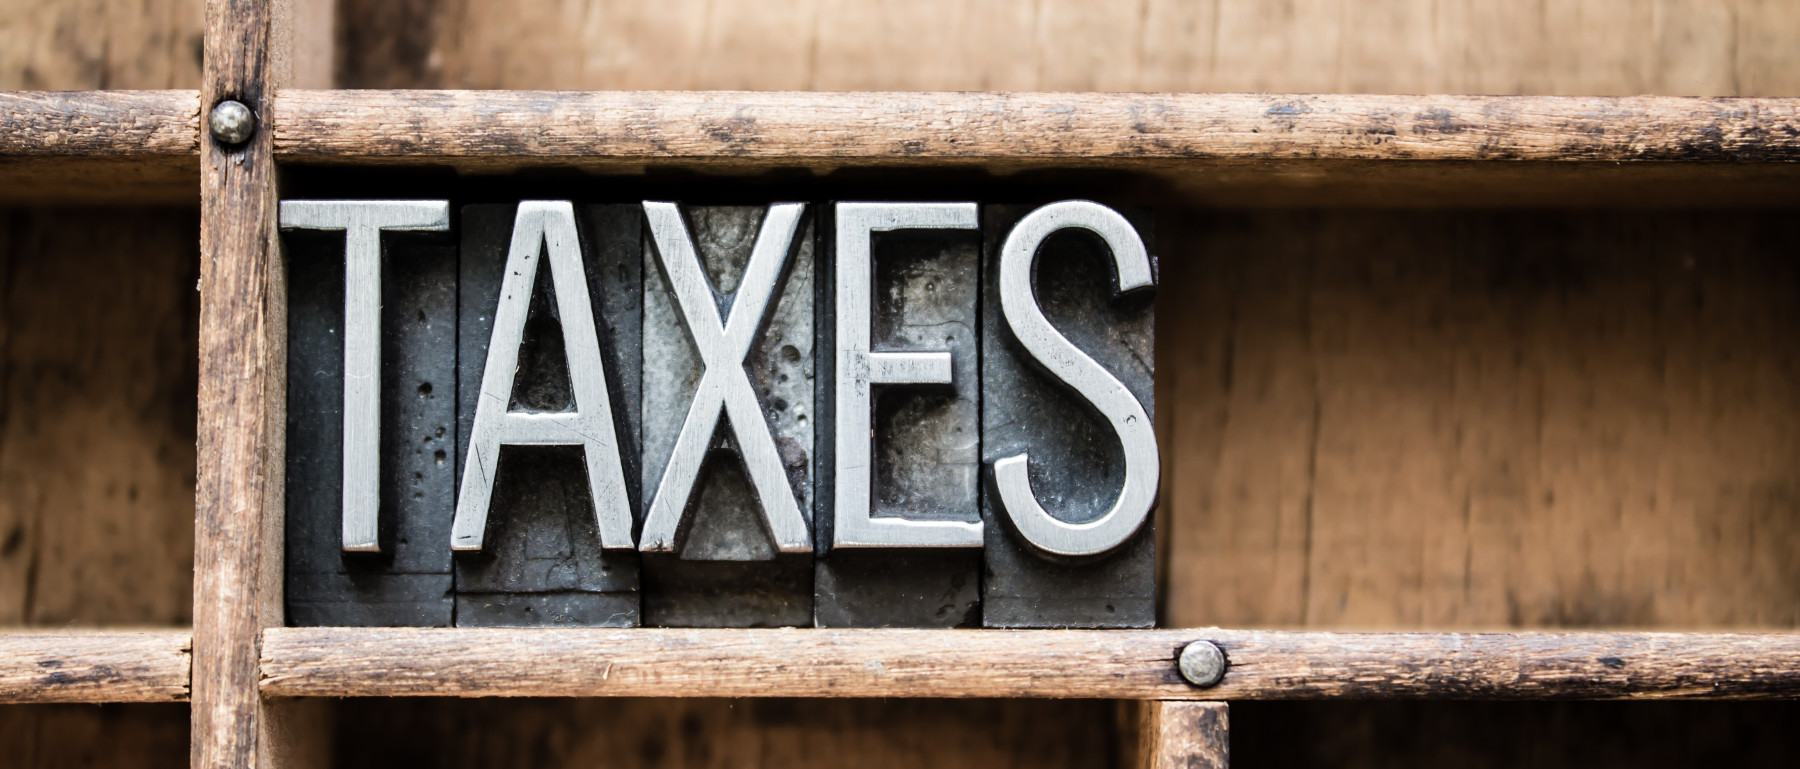 Update to product pricing on the website - VAT (Sales Tax)